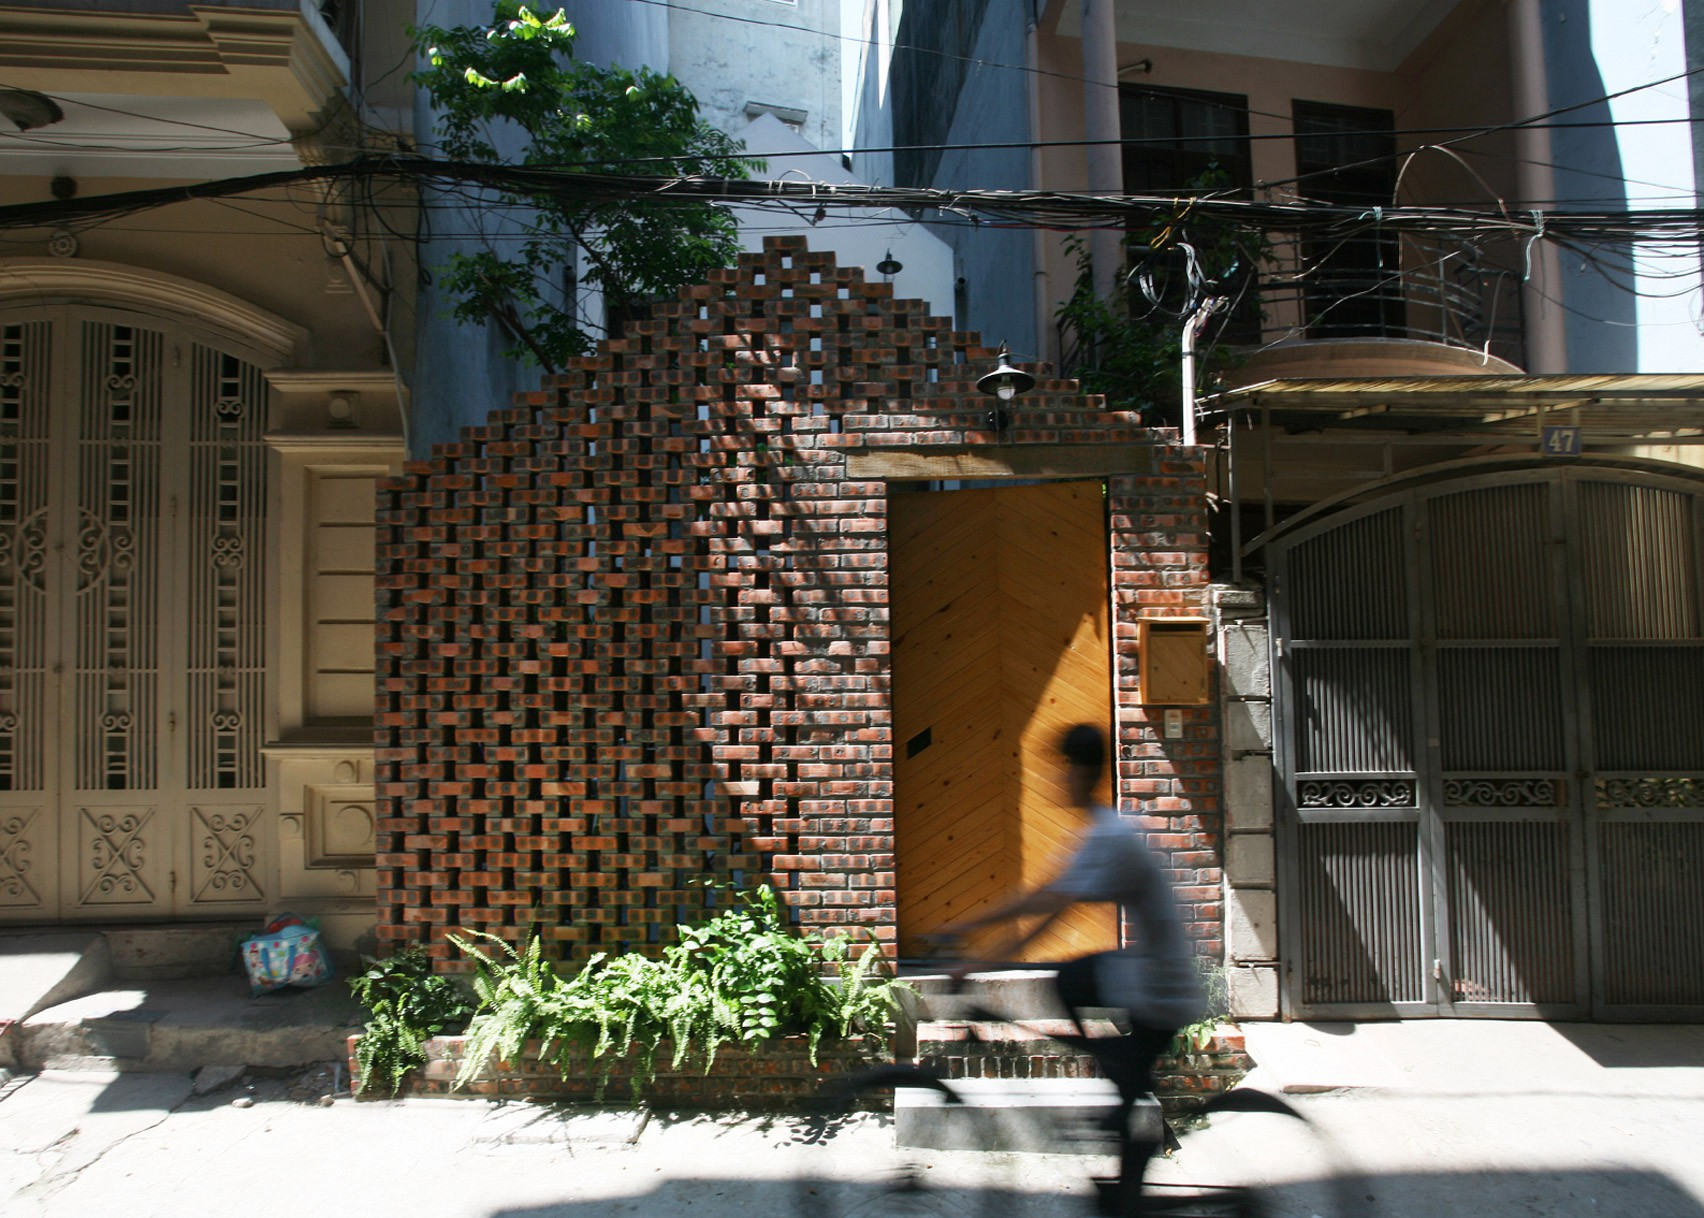 masion-t-hanoi-house-nghia-architect-vietnam-perforated-brick_dezeen_1704_slideshow_17